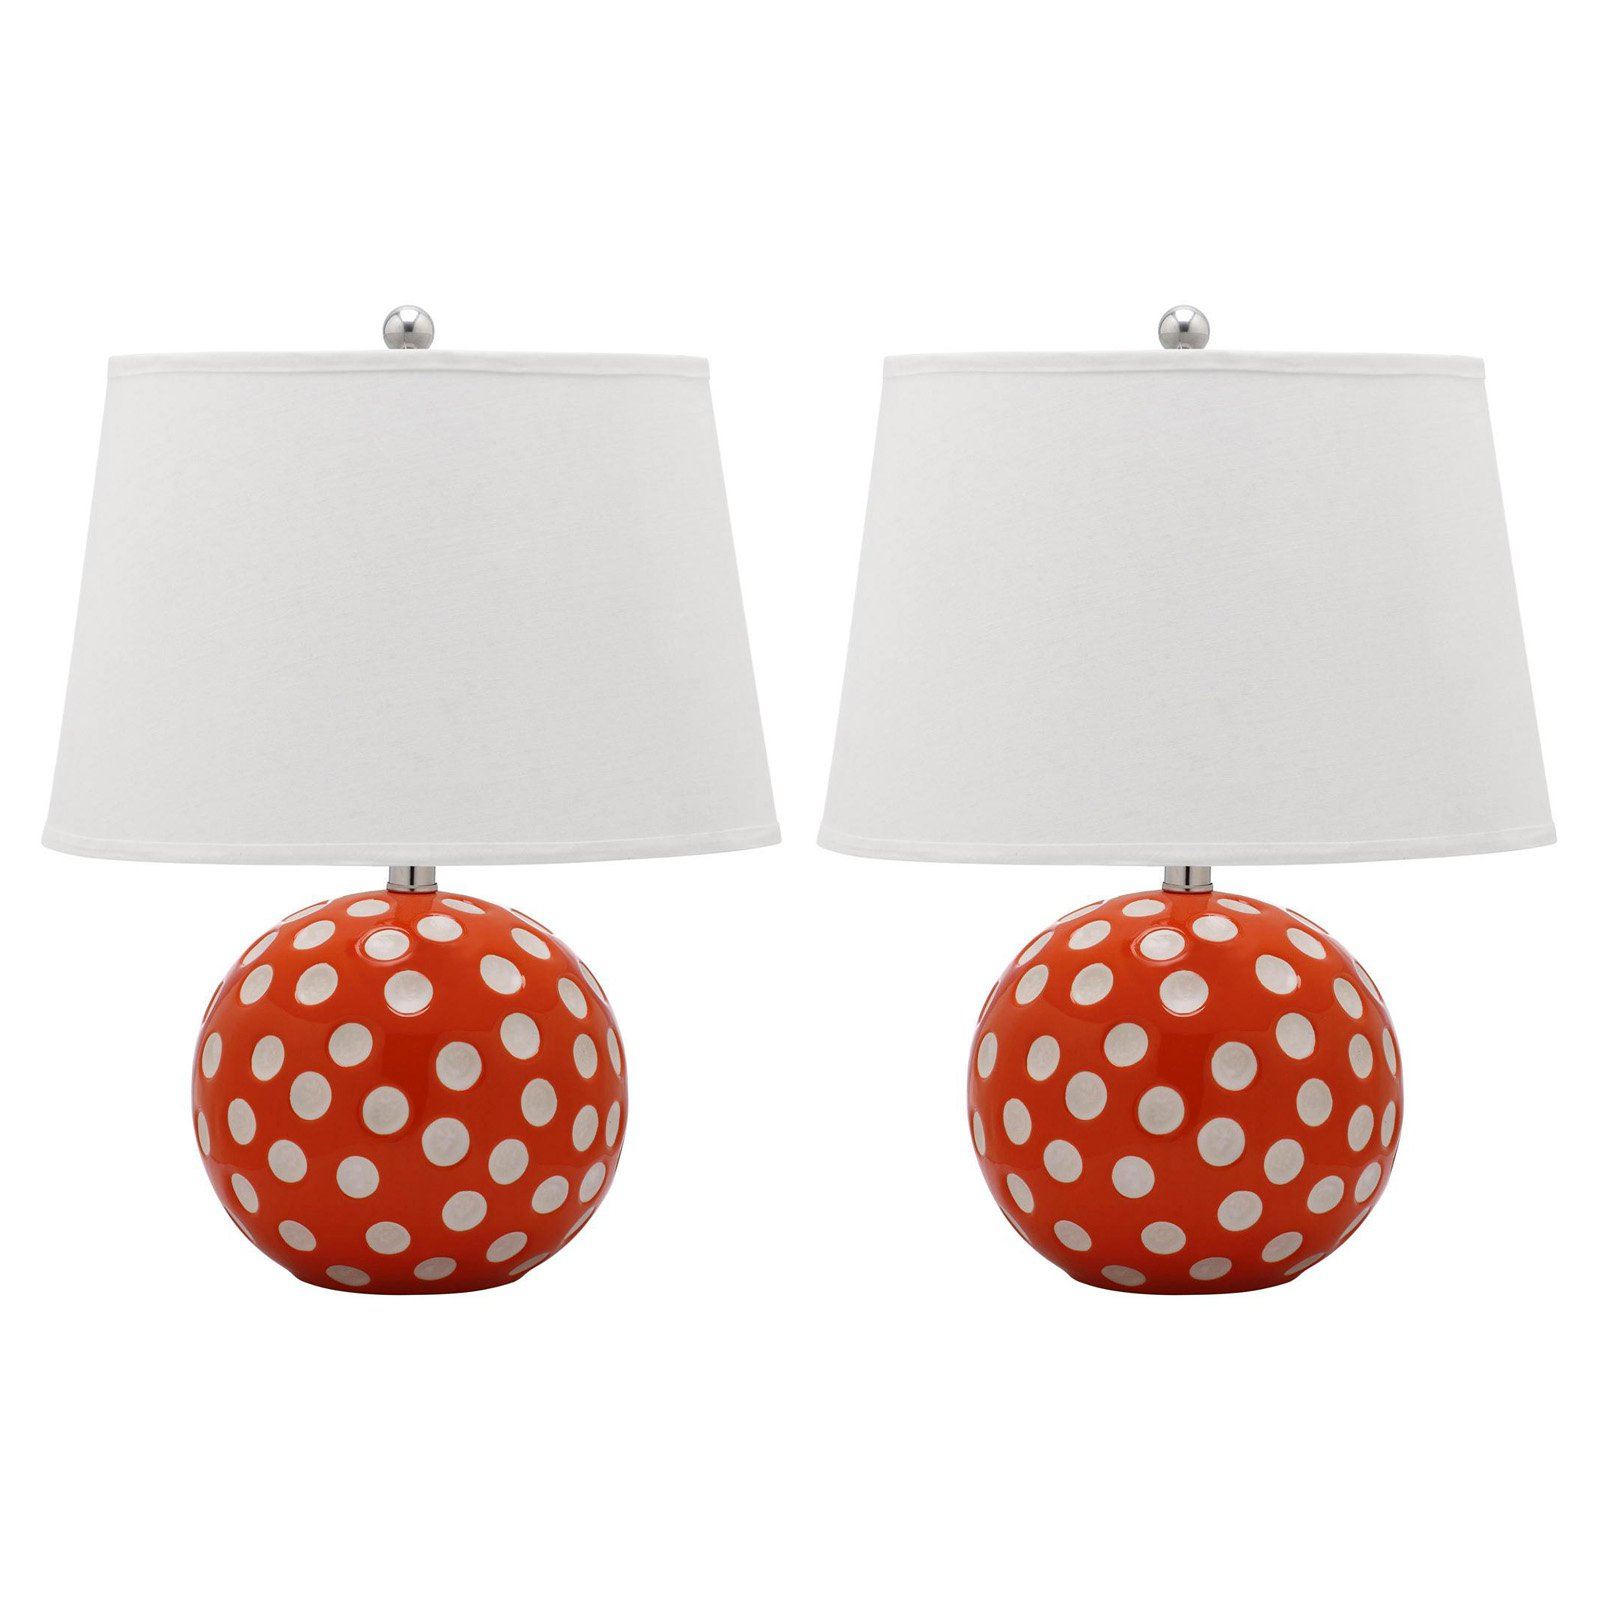 Safavieh Polka Dot Circle Table Lamp with CFL Bulb, Multiple Colors, Set of 2